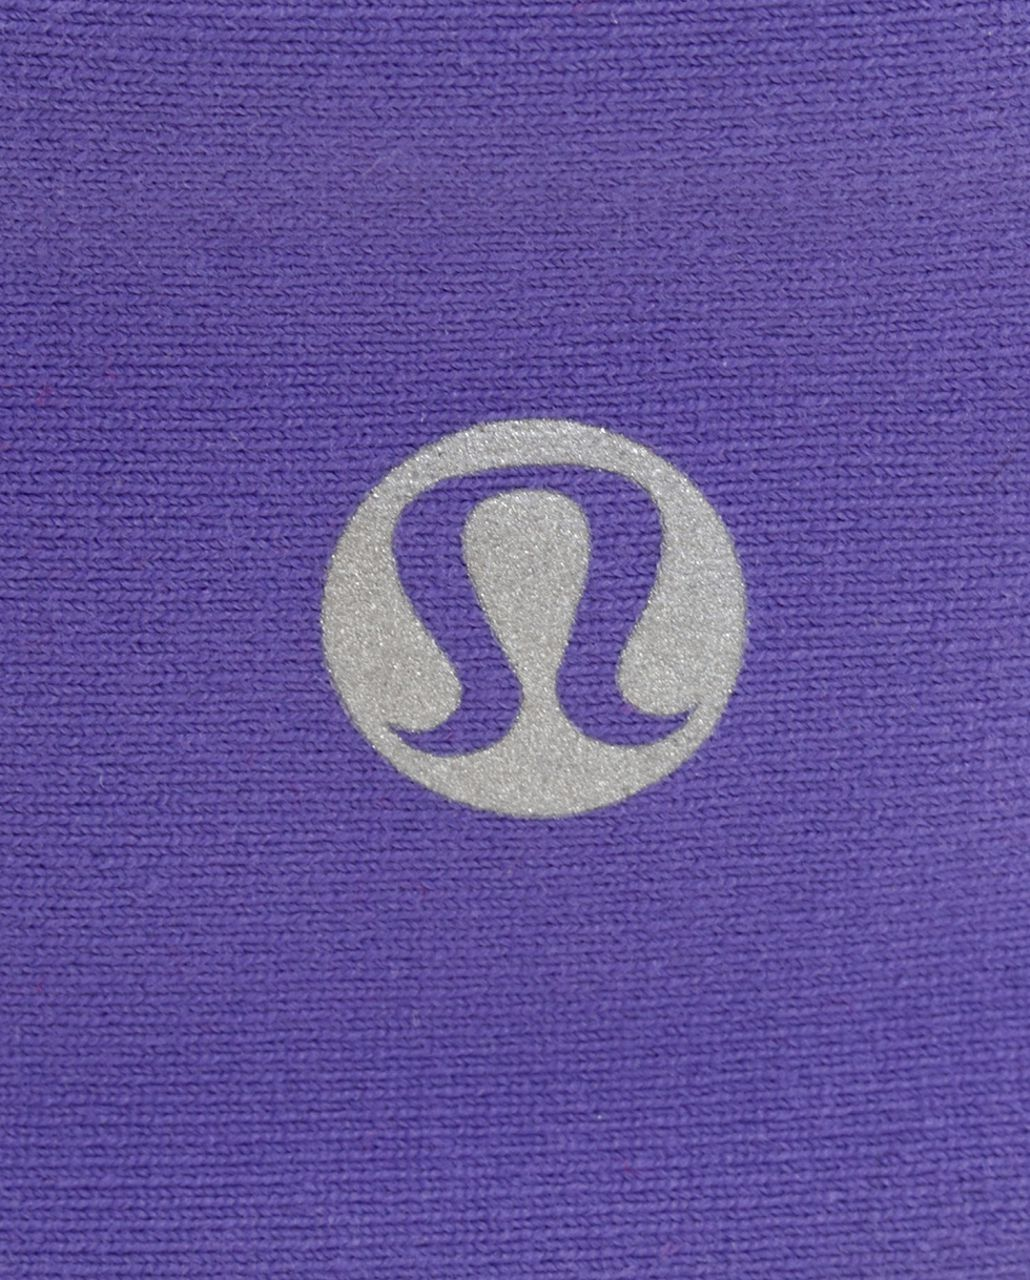 Lululemon Lucky Luon Headband - Persian Purple